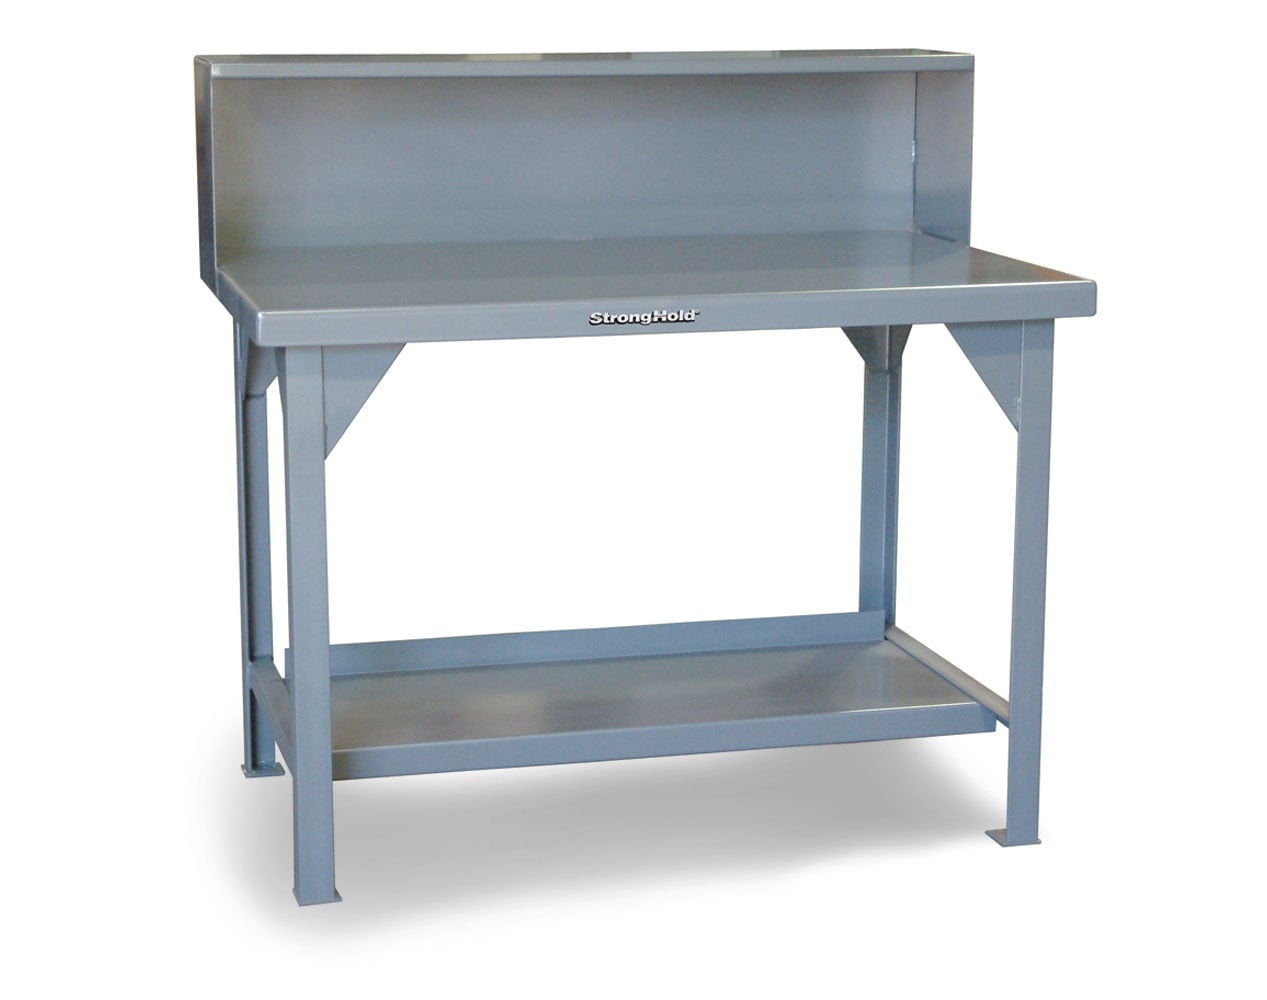 Extra Heavy Duty 7 GA Shop Table with Riser Shelf – 120 In. W x 36 In. D x 46 In. H